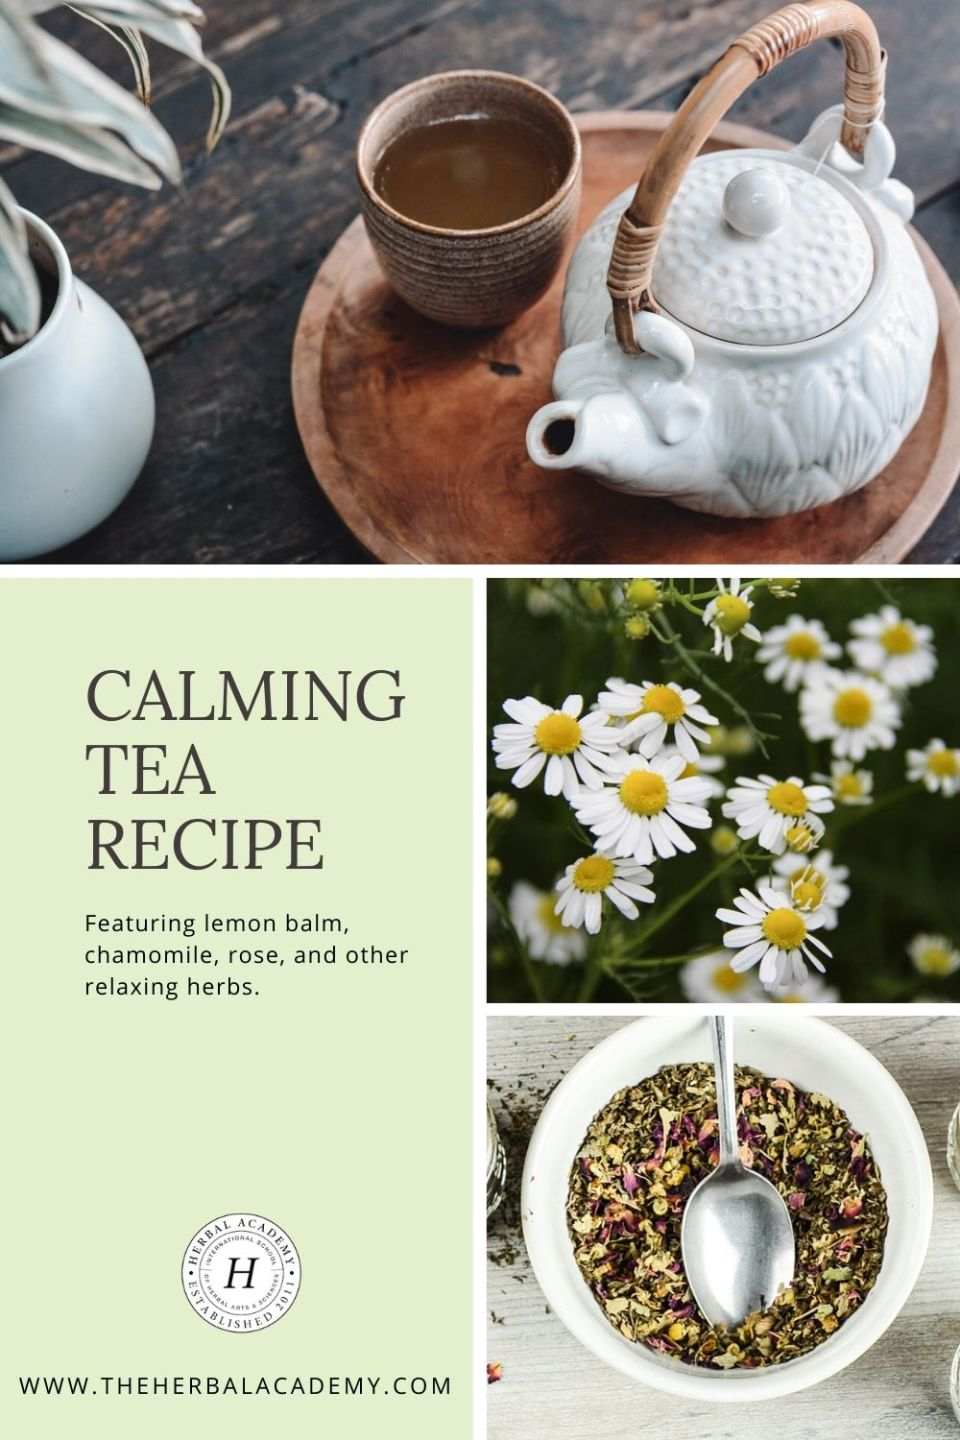 Calming Tea Recipe & Natural Stress Management (With Video!) | The Herbal Academy | Simple lifestyle practices to go-to formulas, like our Calming Tea Recipe, can help us better manage and cope with stress naturally.